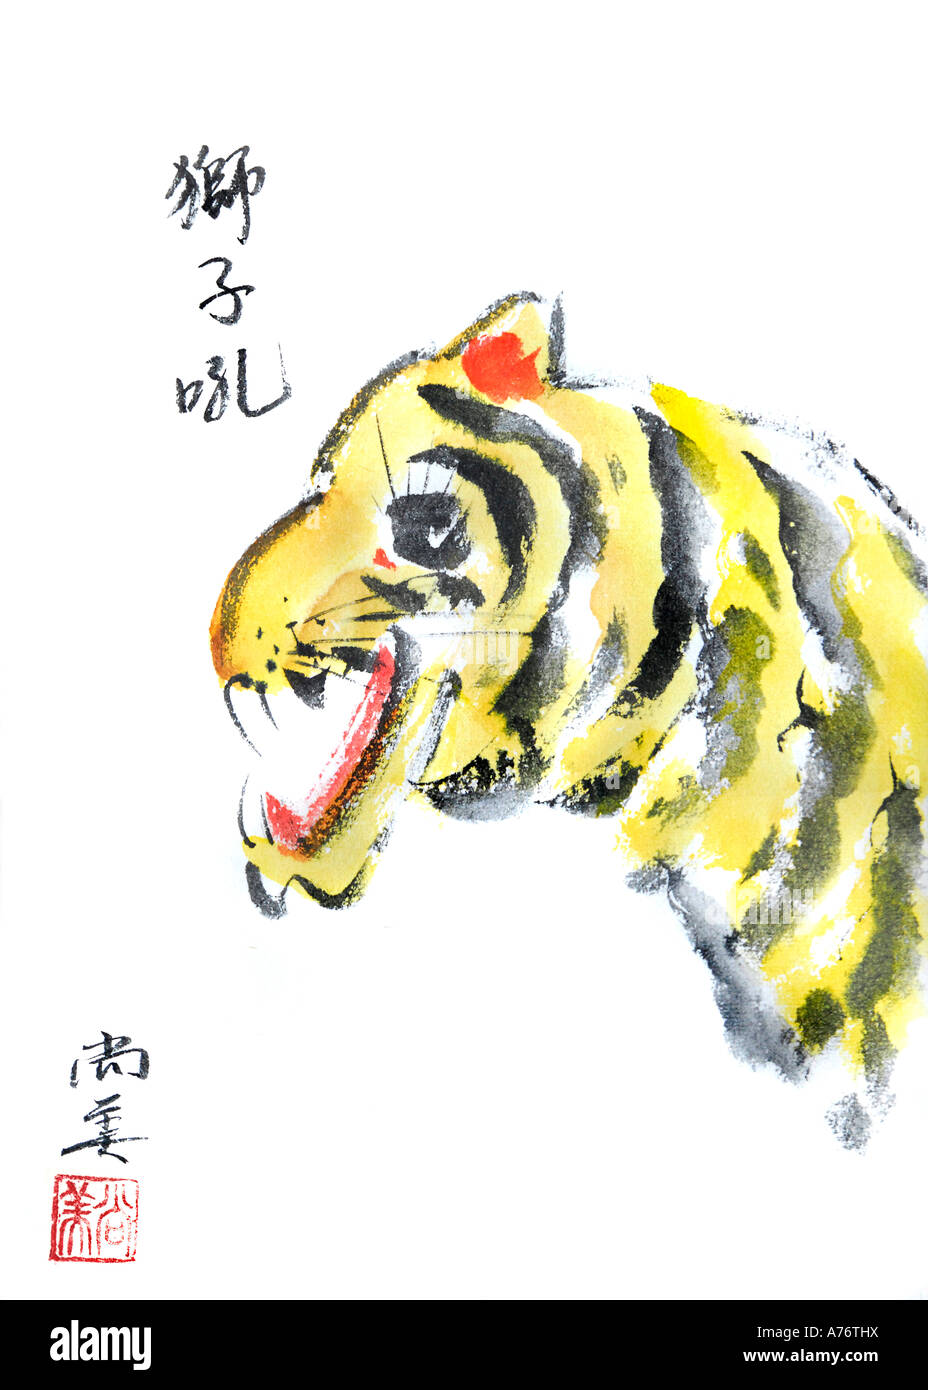 Year of the Tiger Hand painted Japanese calligraphy art by Naomi Saso of Nara prefecture Japan GROWLING - Stock Image